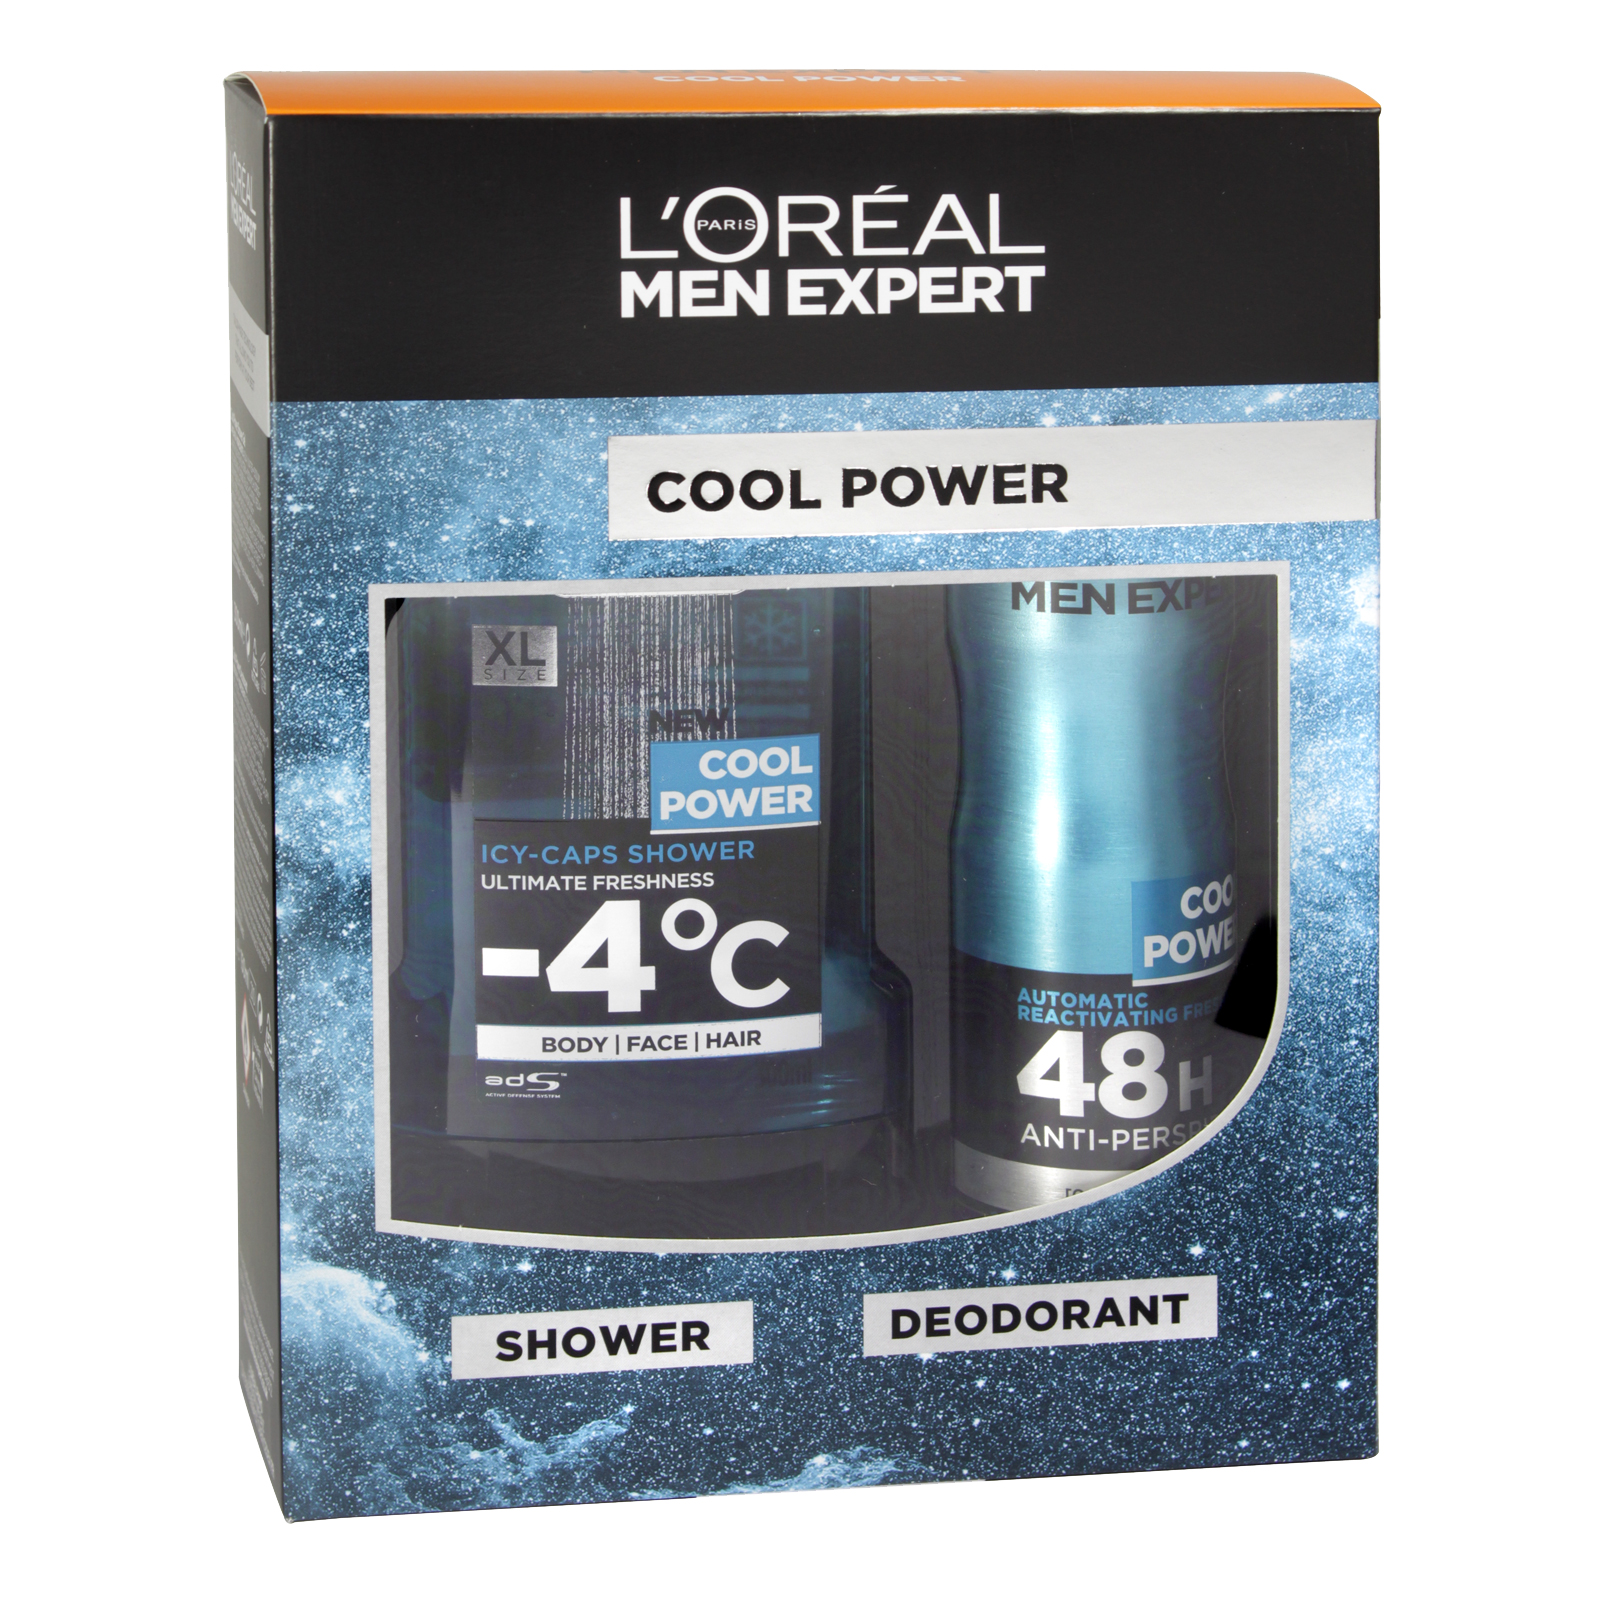 LOREAL MEN EXPERT 300ML SHOWER GEL+150ML DEOD COOL POWER